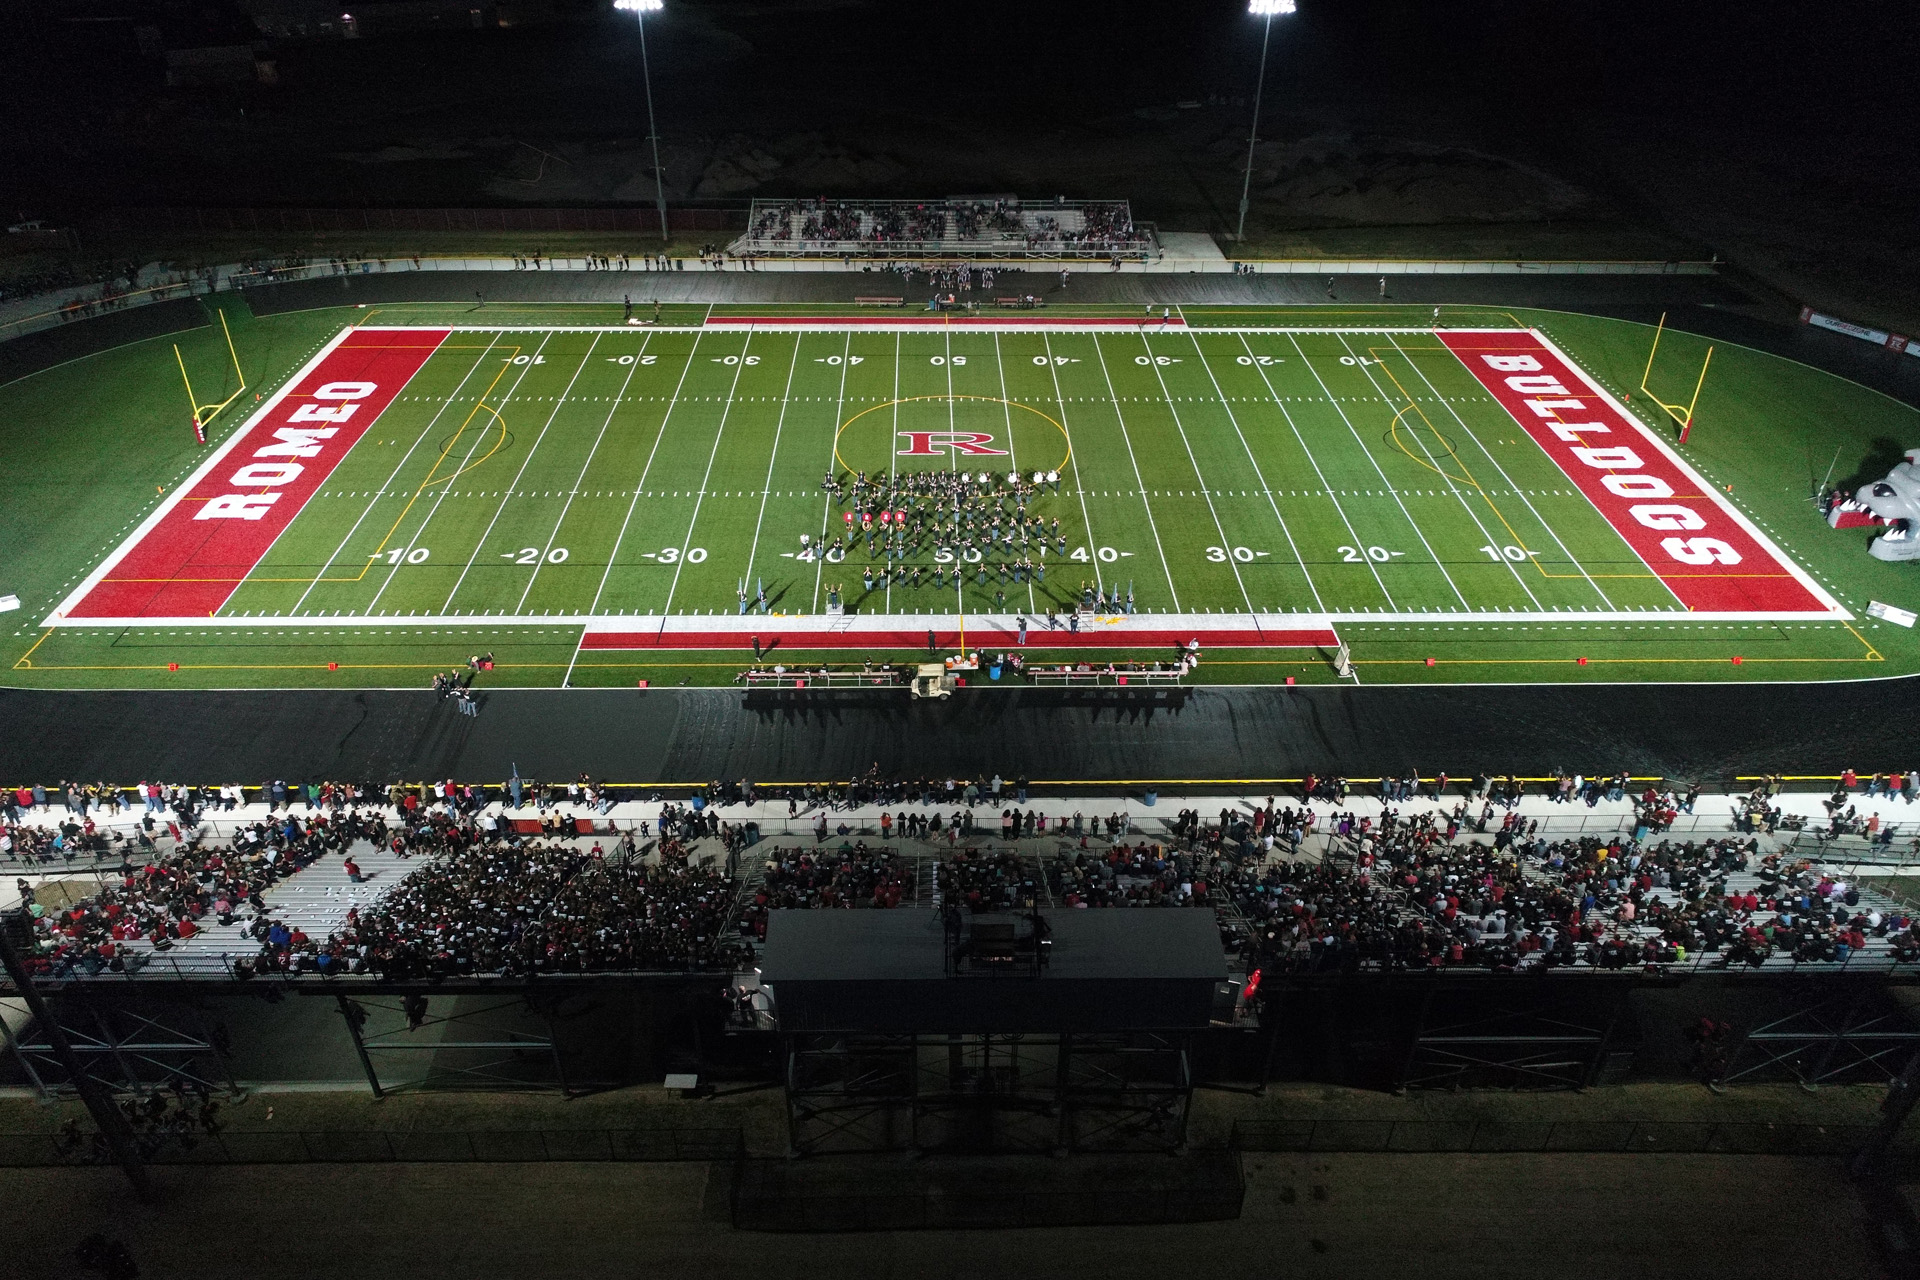 Romeo High School Barnabo Field